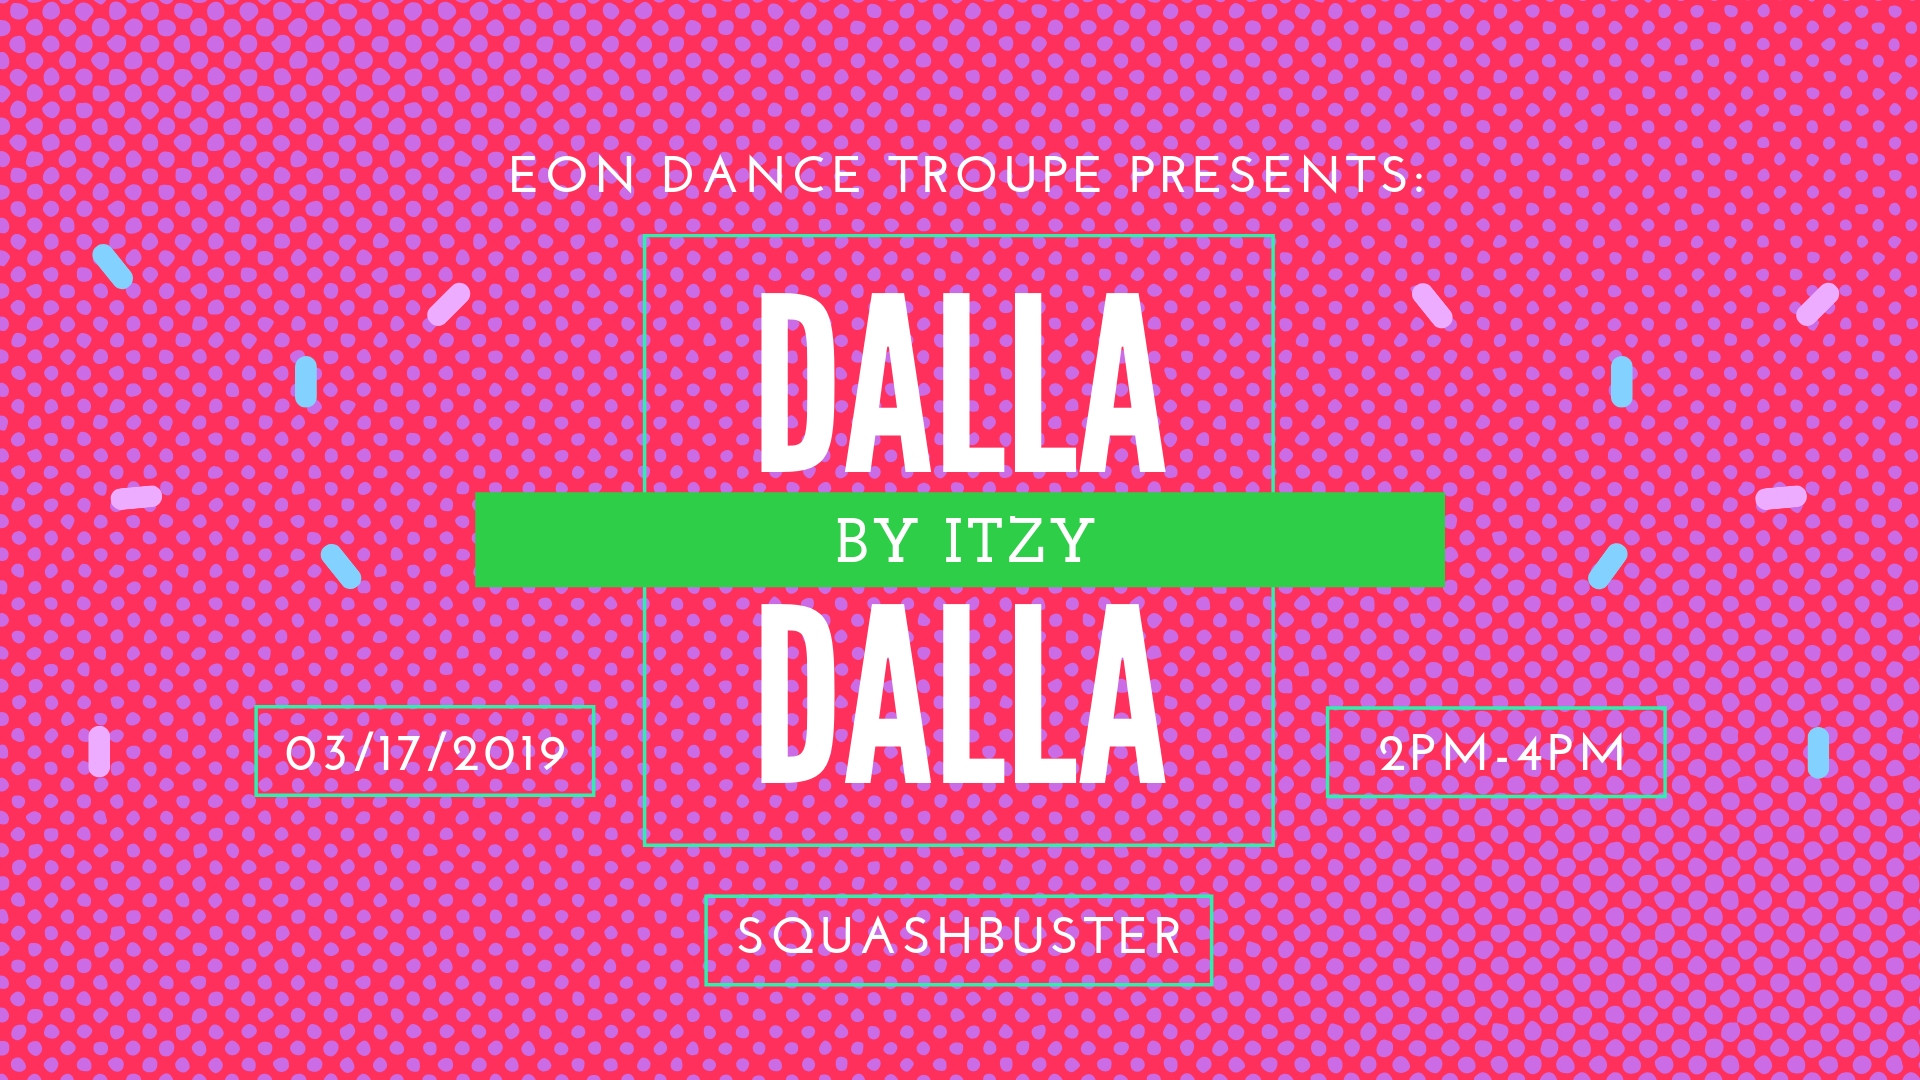 Eon Dance Troupe Workshop: Dalla Dalla by Itzy